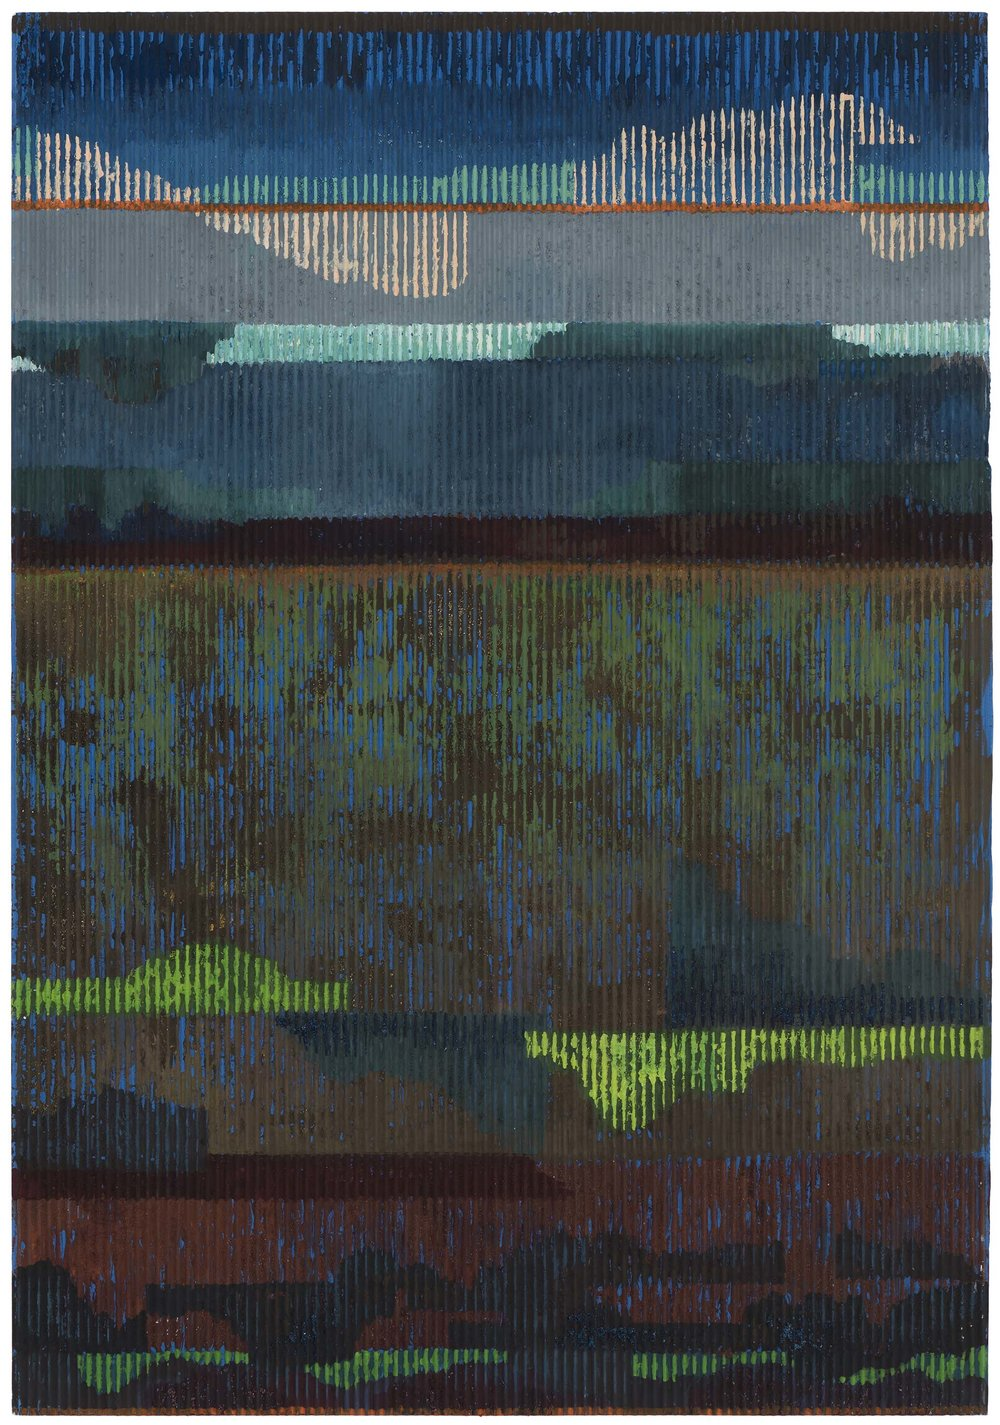 Midsummer night 4 (with clouds). 2015. gouache and acrylic on corrugated card. 50 x 35 cm. SOLD